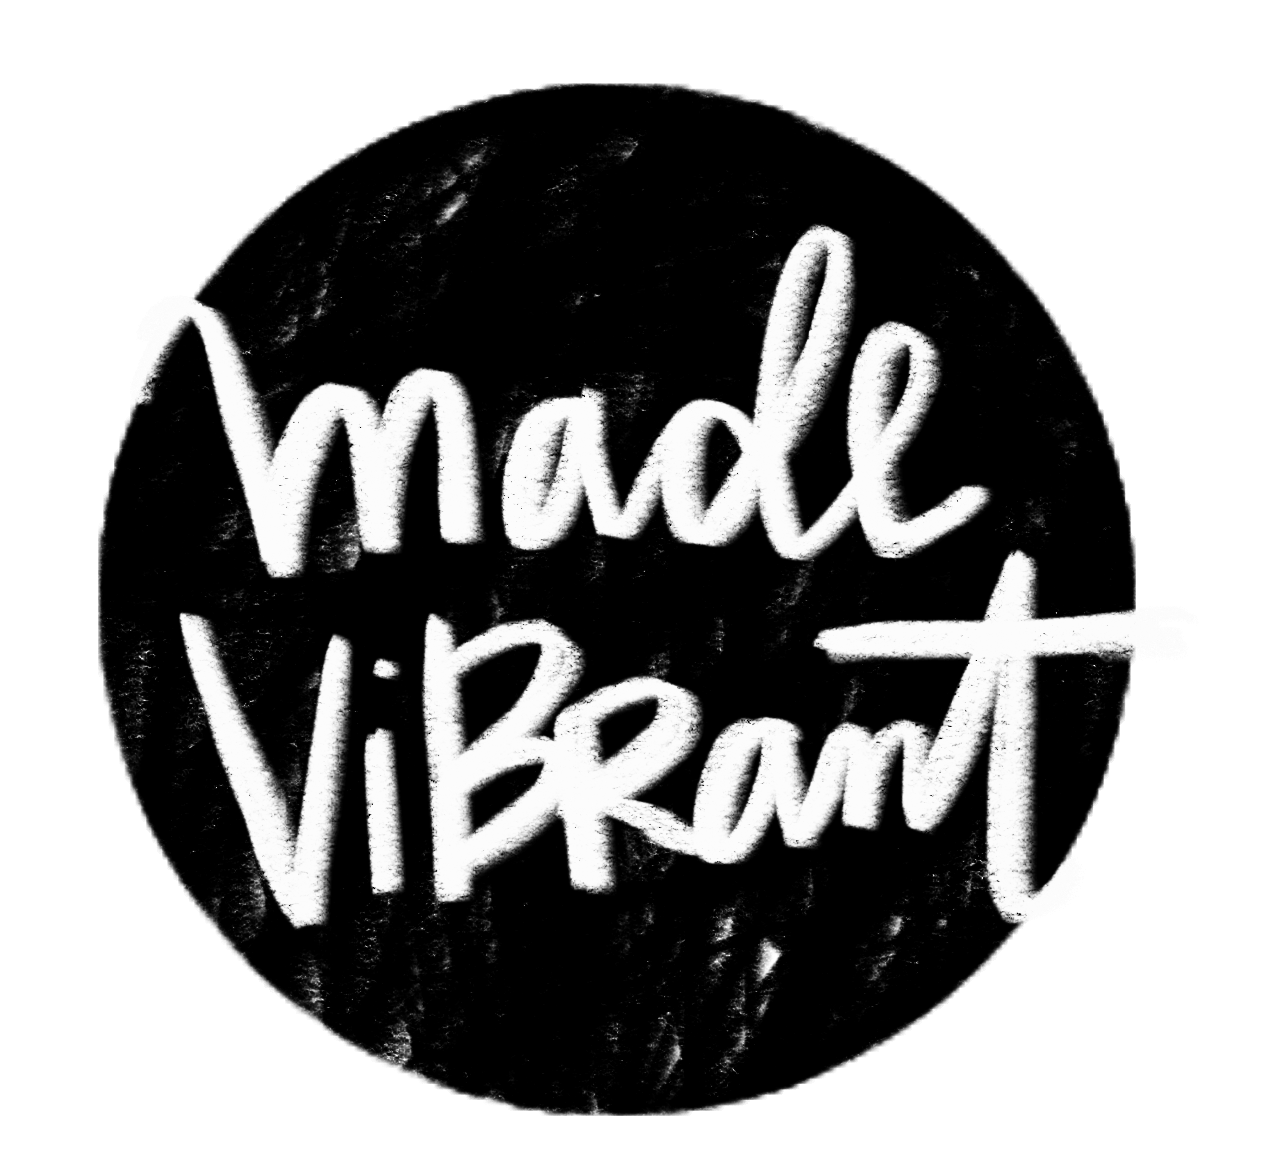 Made Vibrant